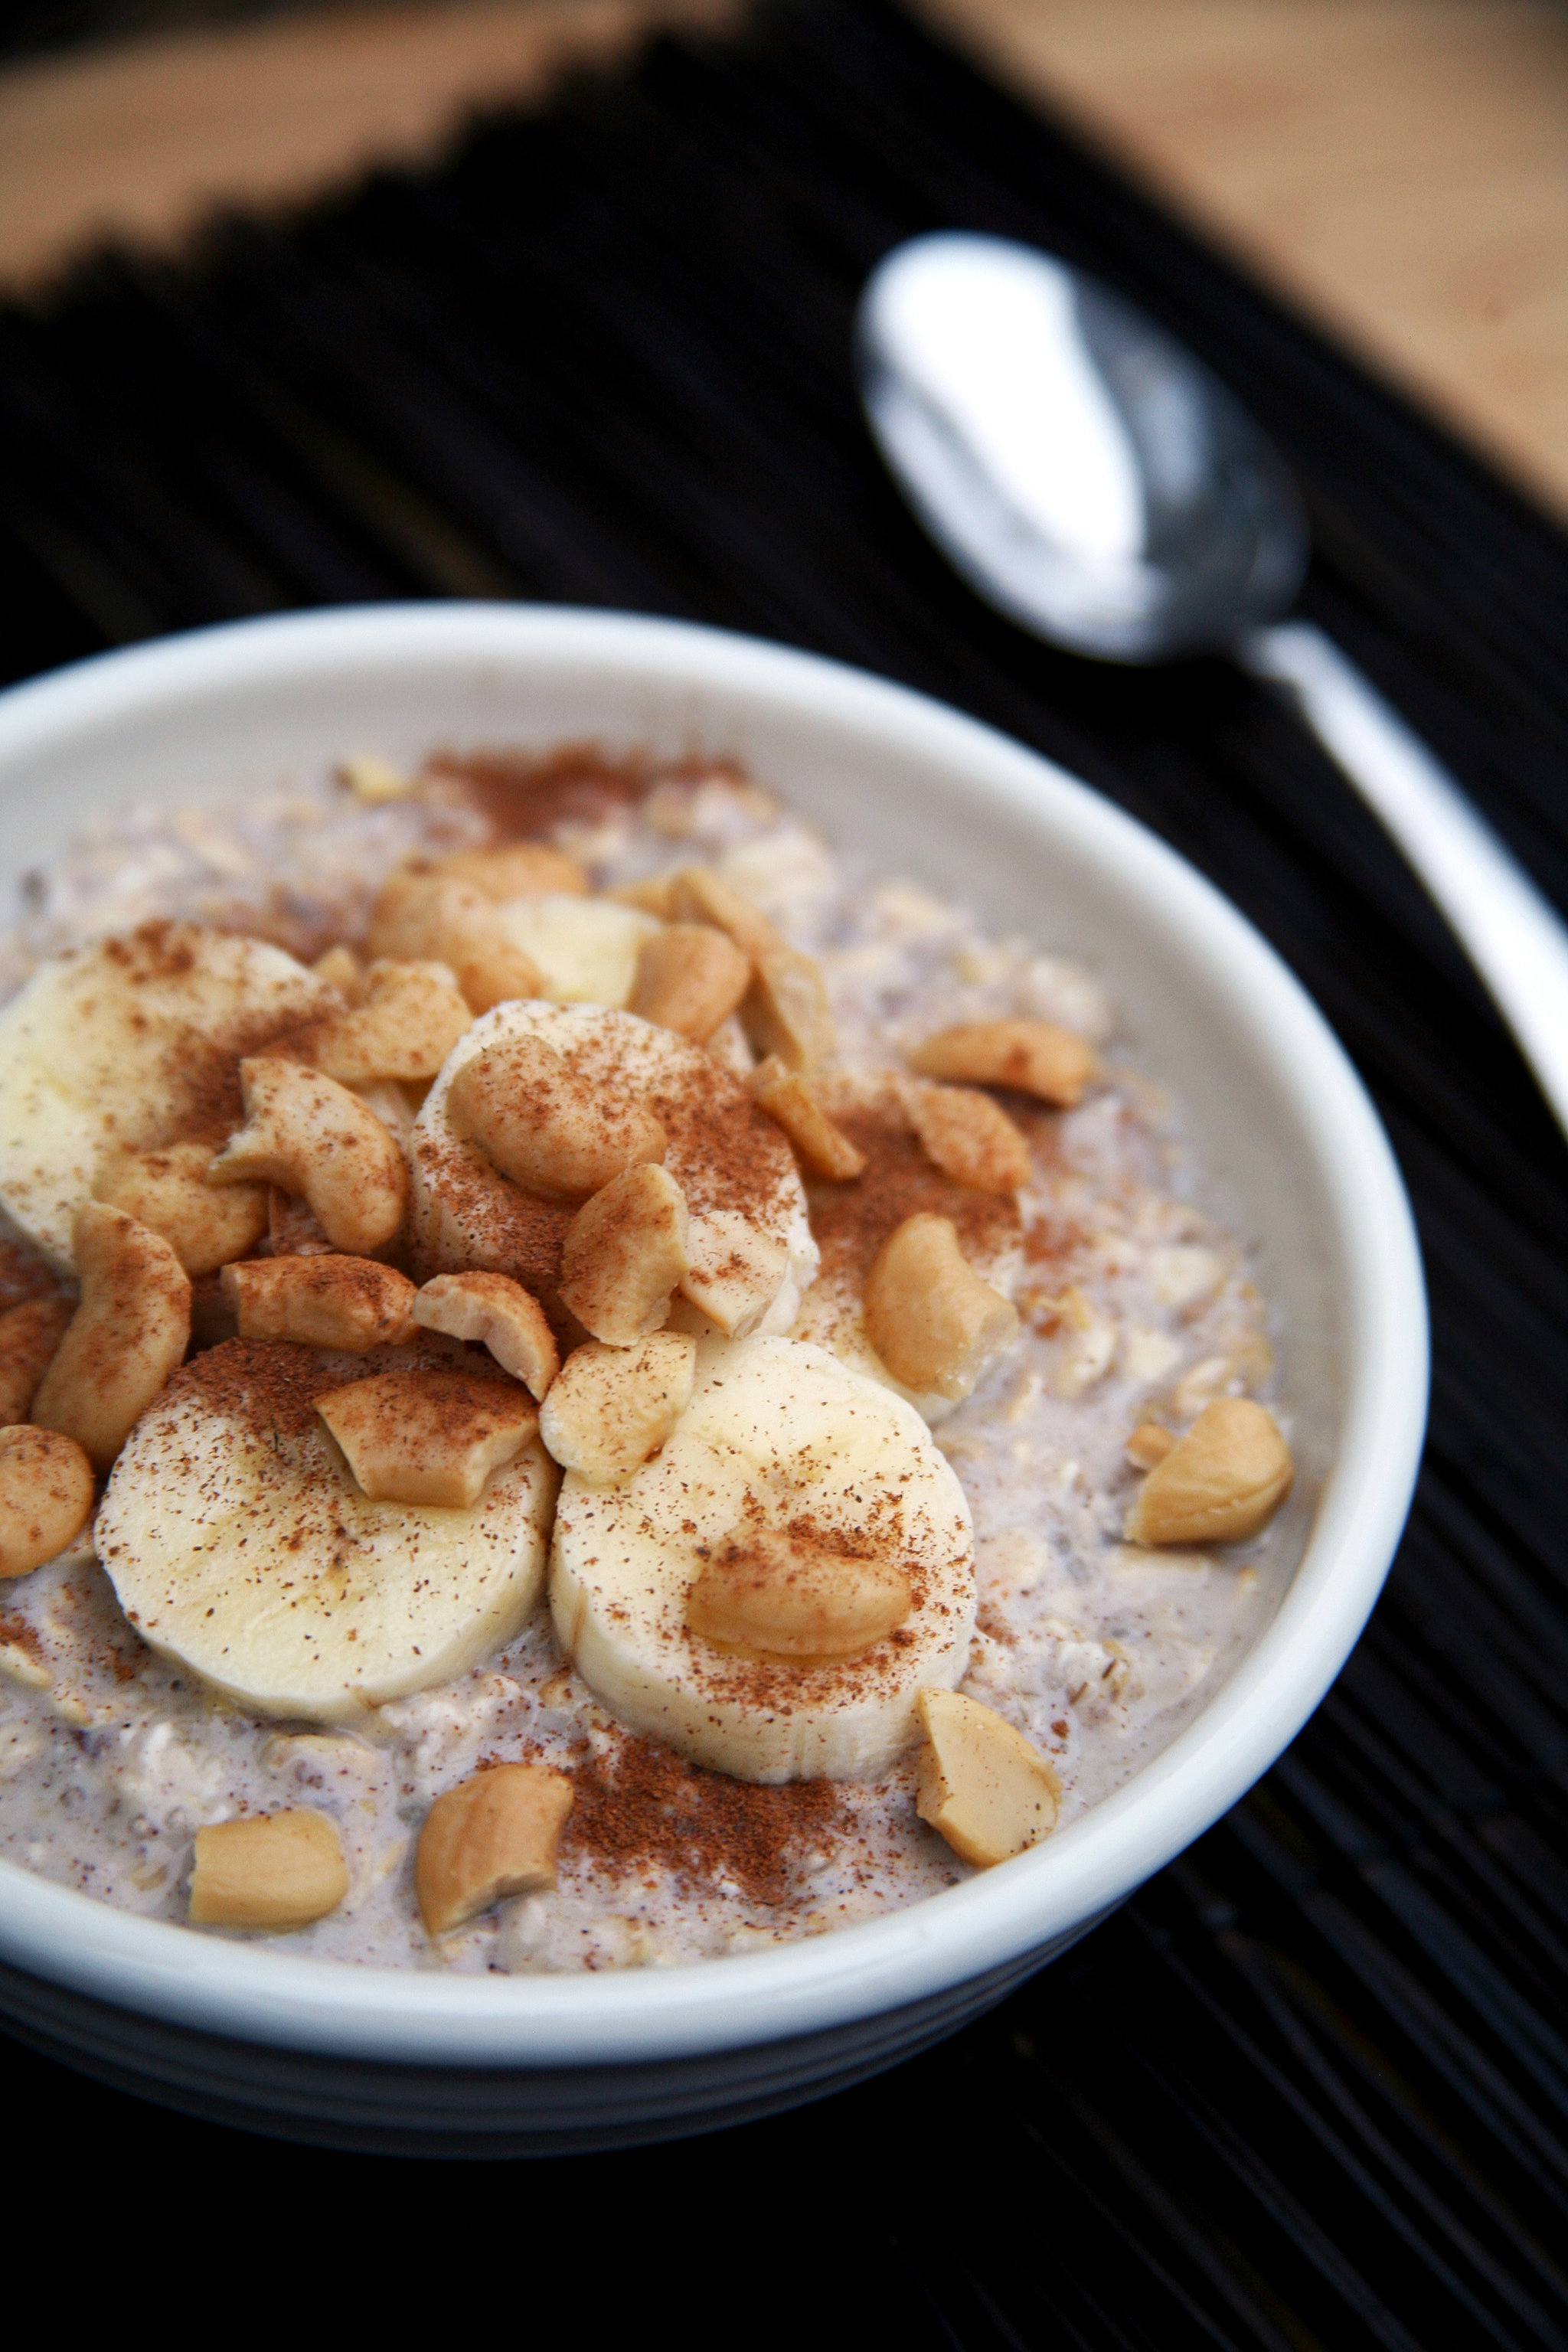 Incredibly Creamy Banana Cashew Overnight Oats